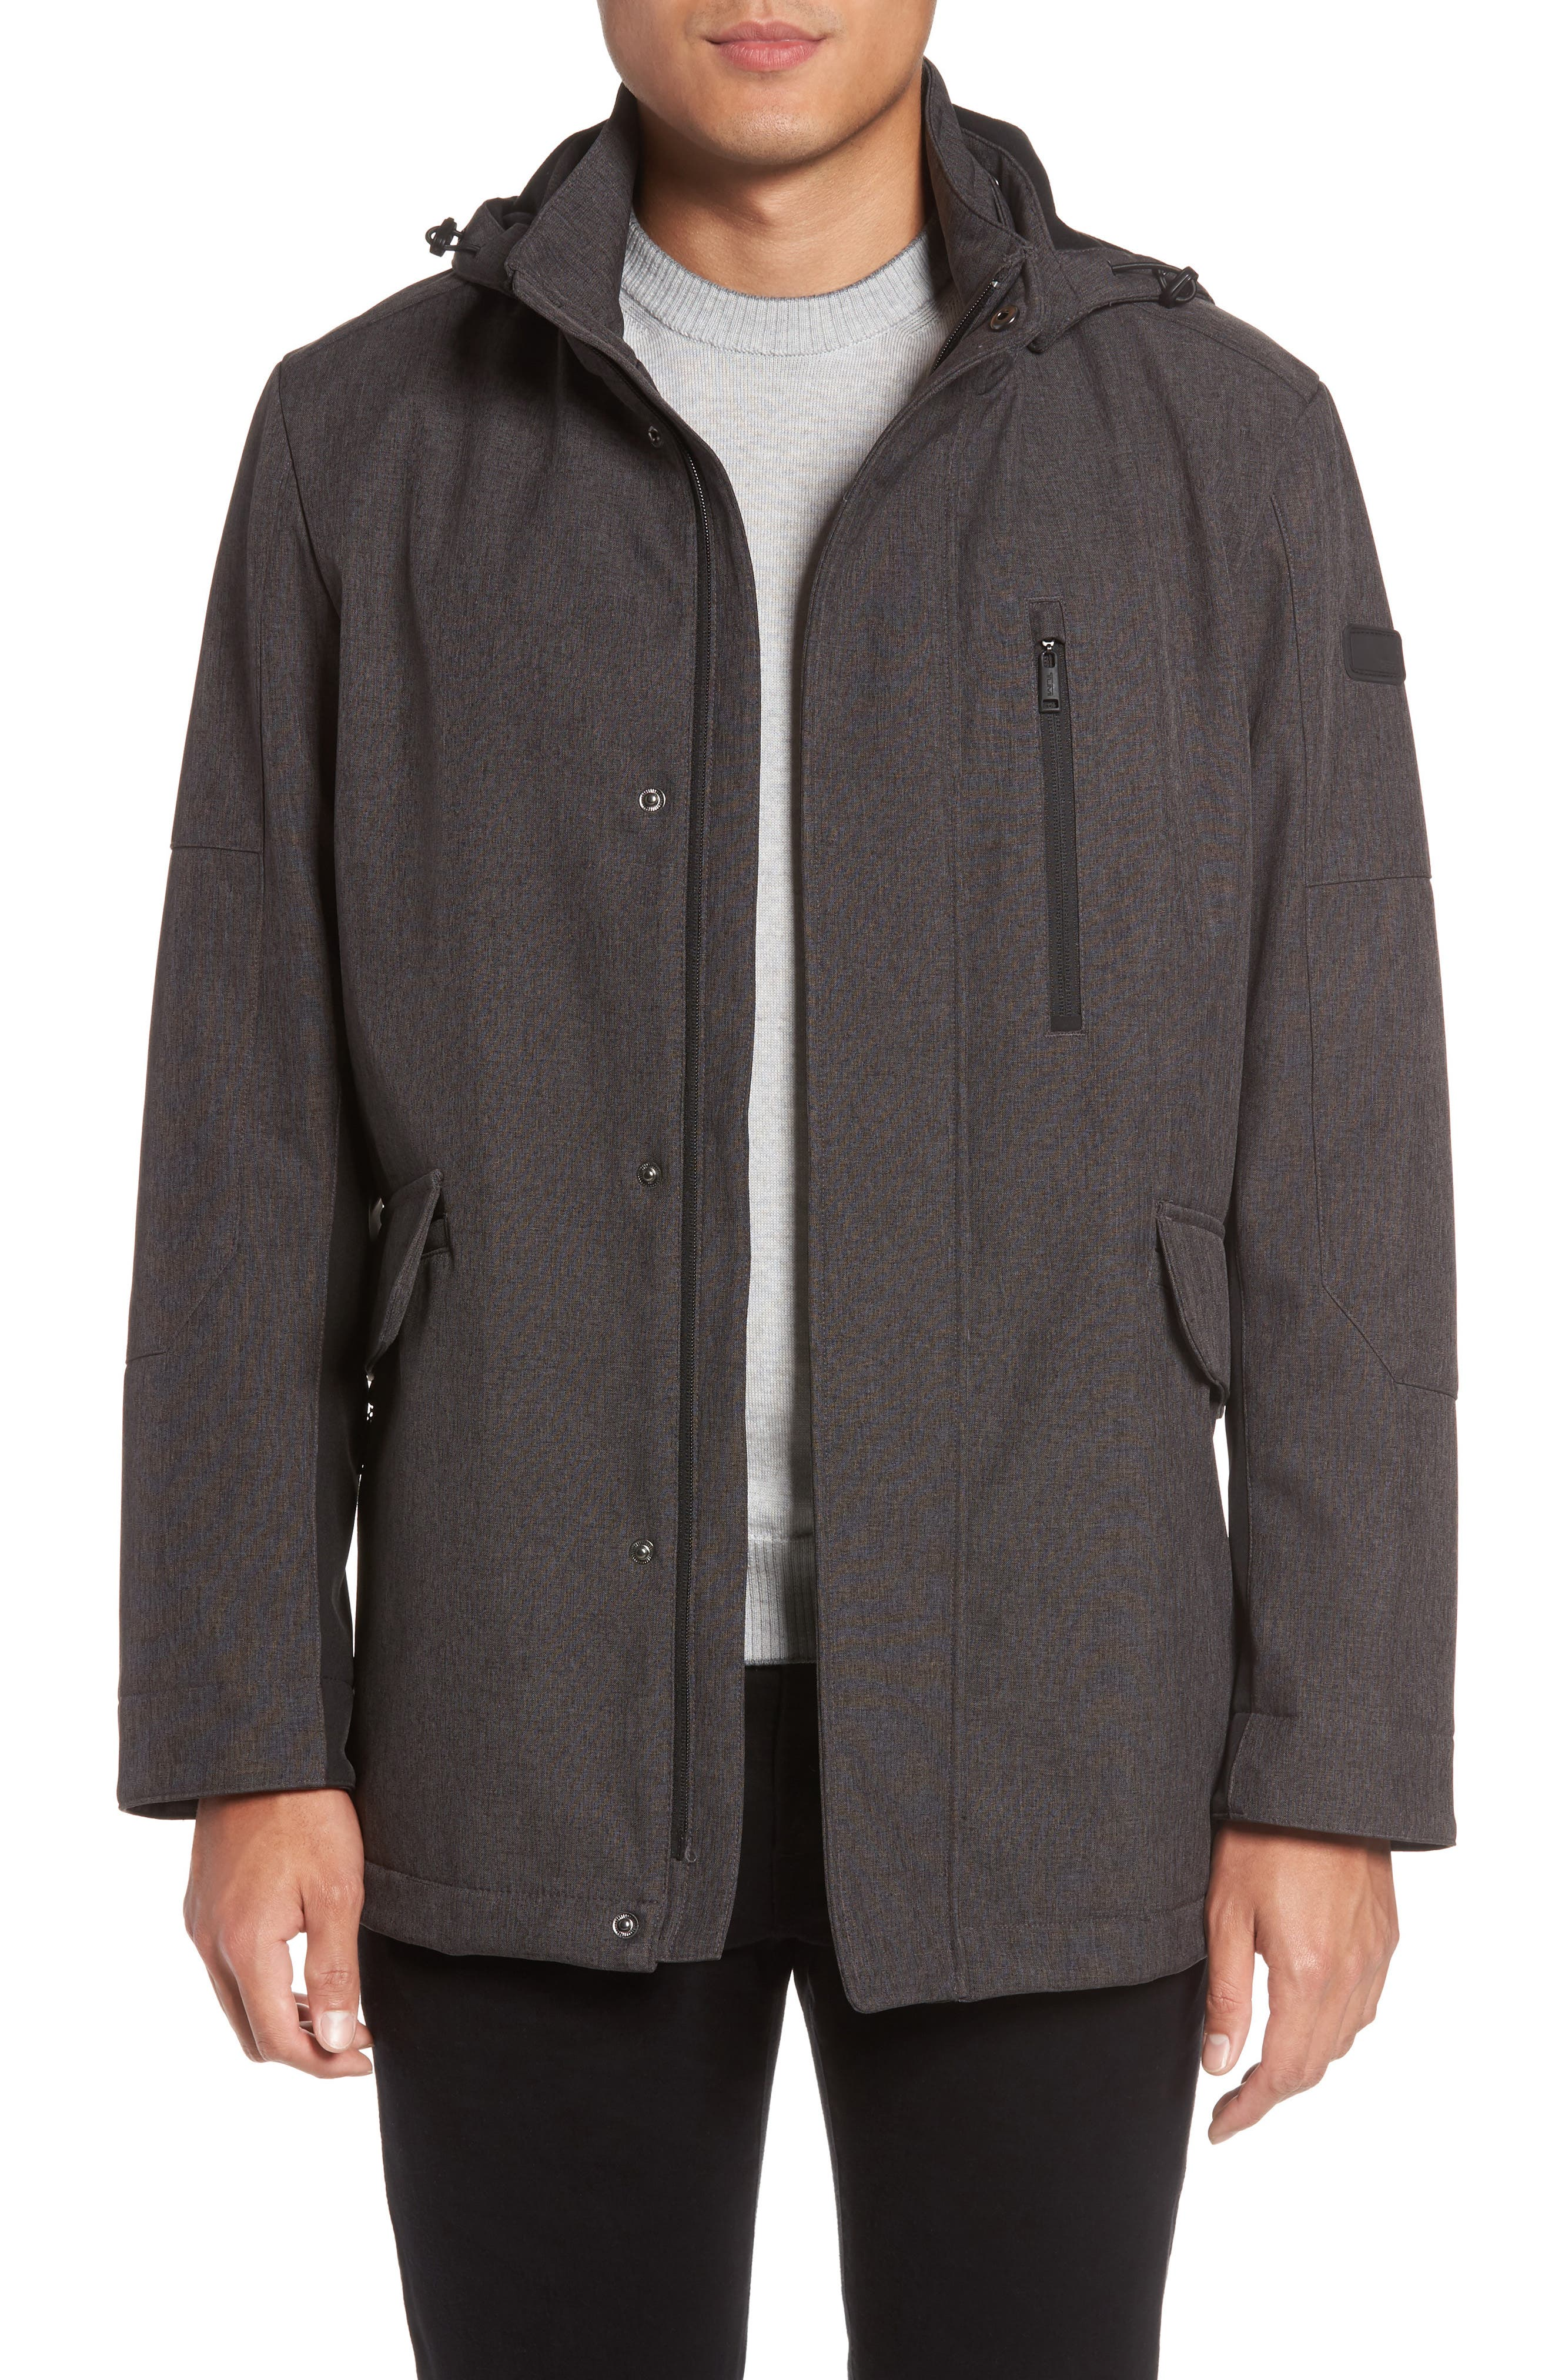 Main Image - Tumi Understated Commuter Water-Resistant Jacket with Removable Hood